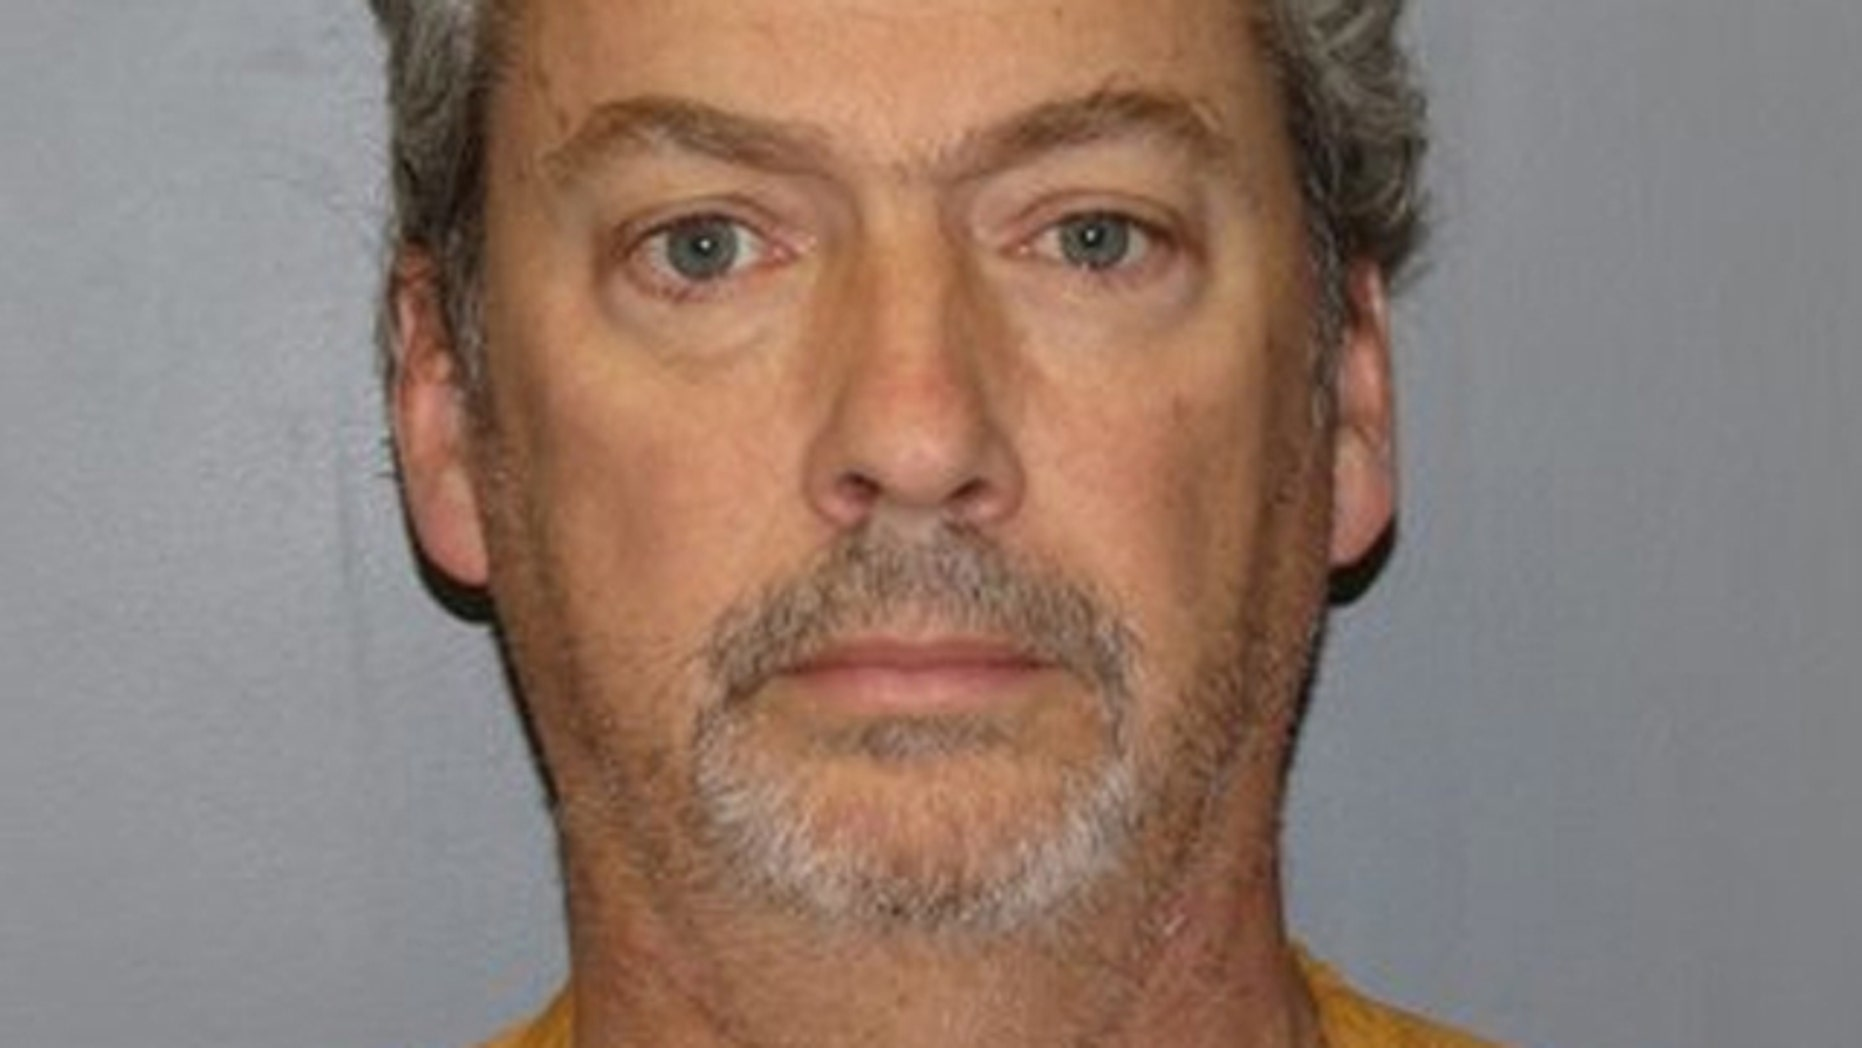 This photo provided by the Somerset County Prosecutor's Office shows Patrick J. Lott, of Somerville, N.J.